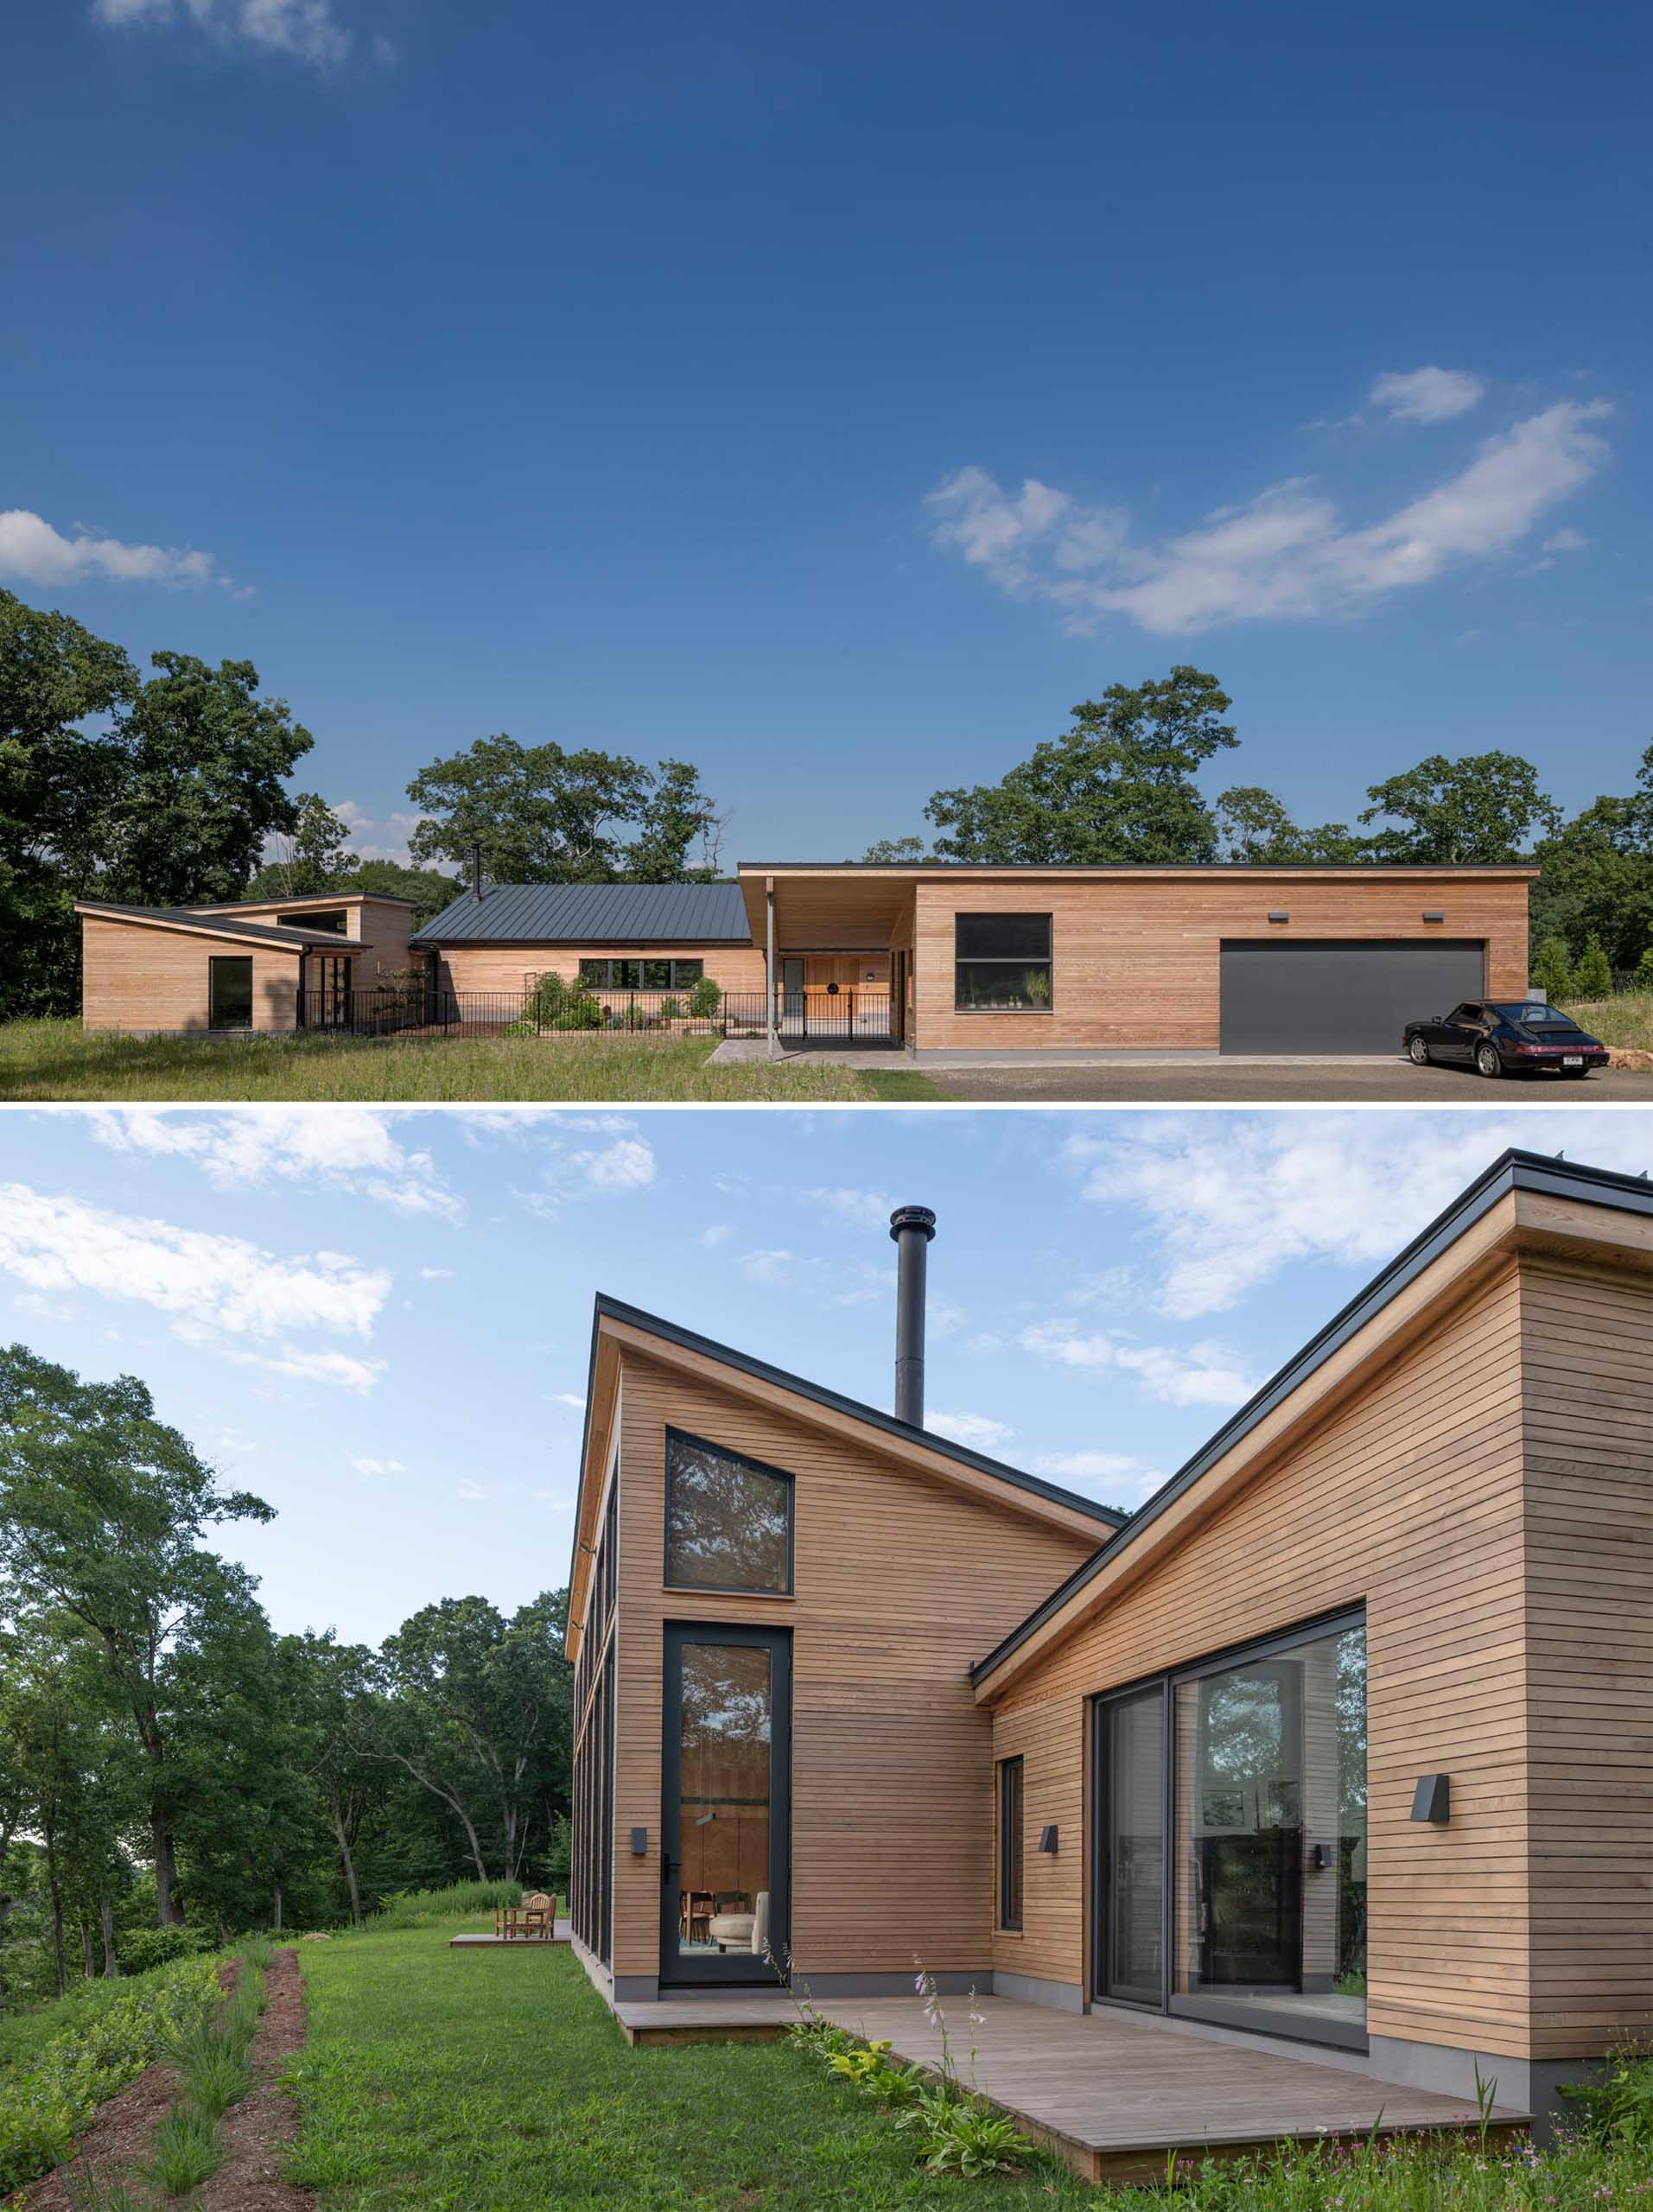 A modern house with wood siding and charcoal colored accents, like window frames, metal roof, and garage door.